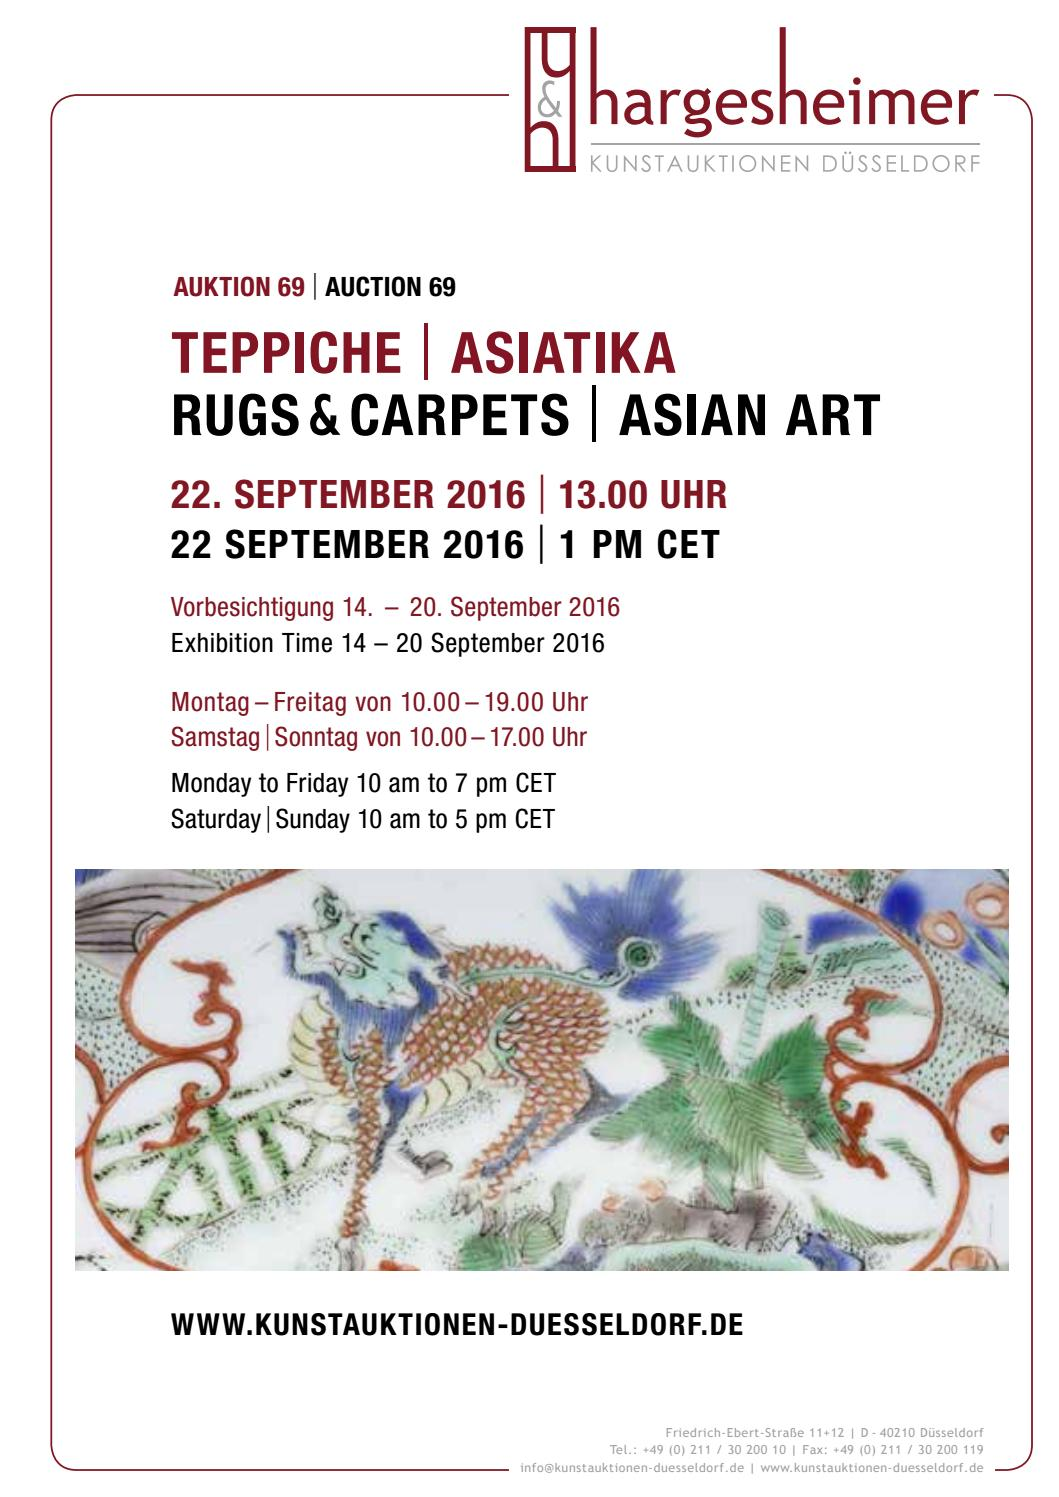 Teppiche In Düsseldorf 69 Auktion Teppiche Asiatische Kunst 22 September 2016 By